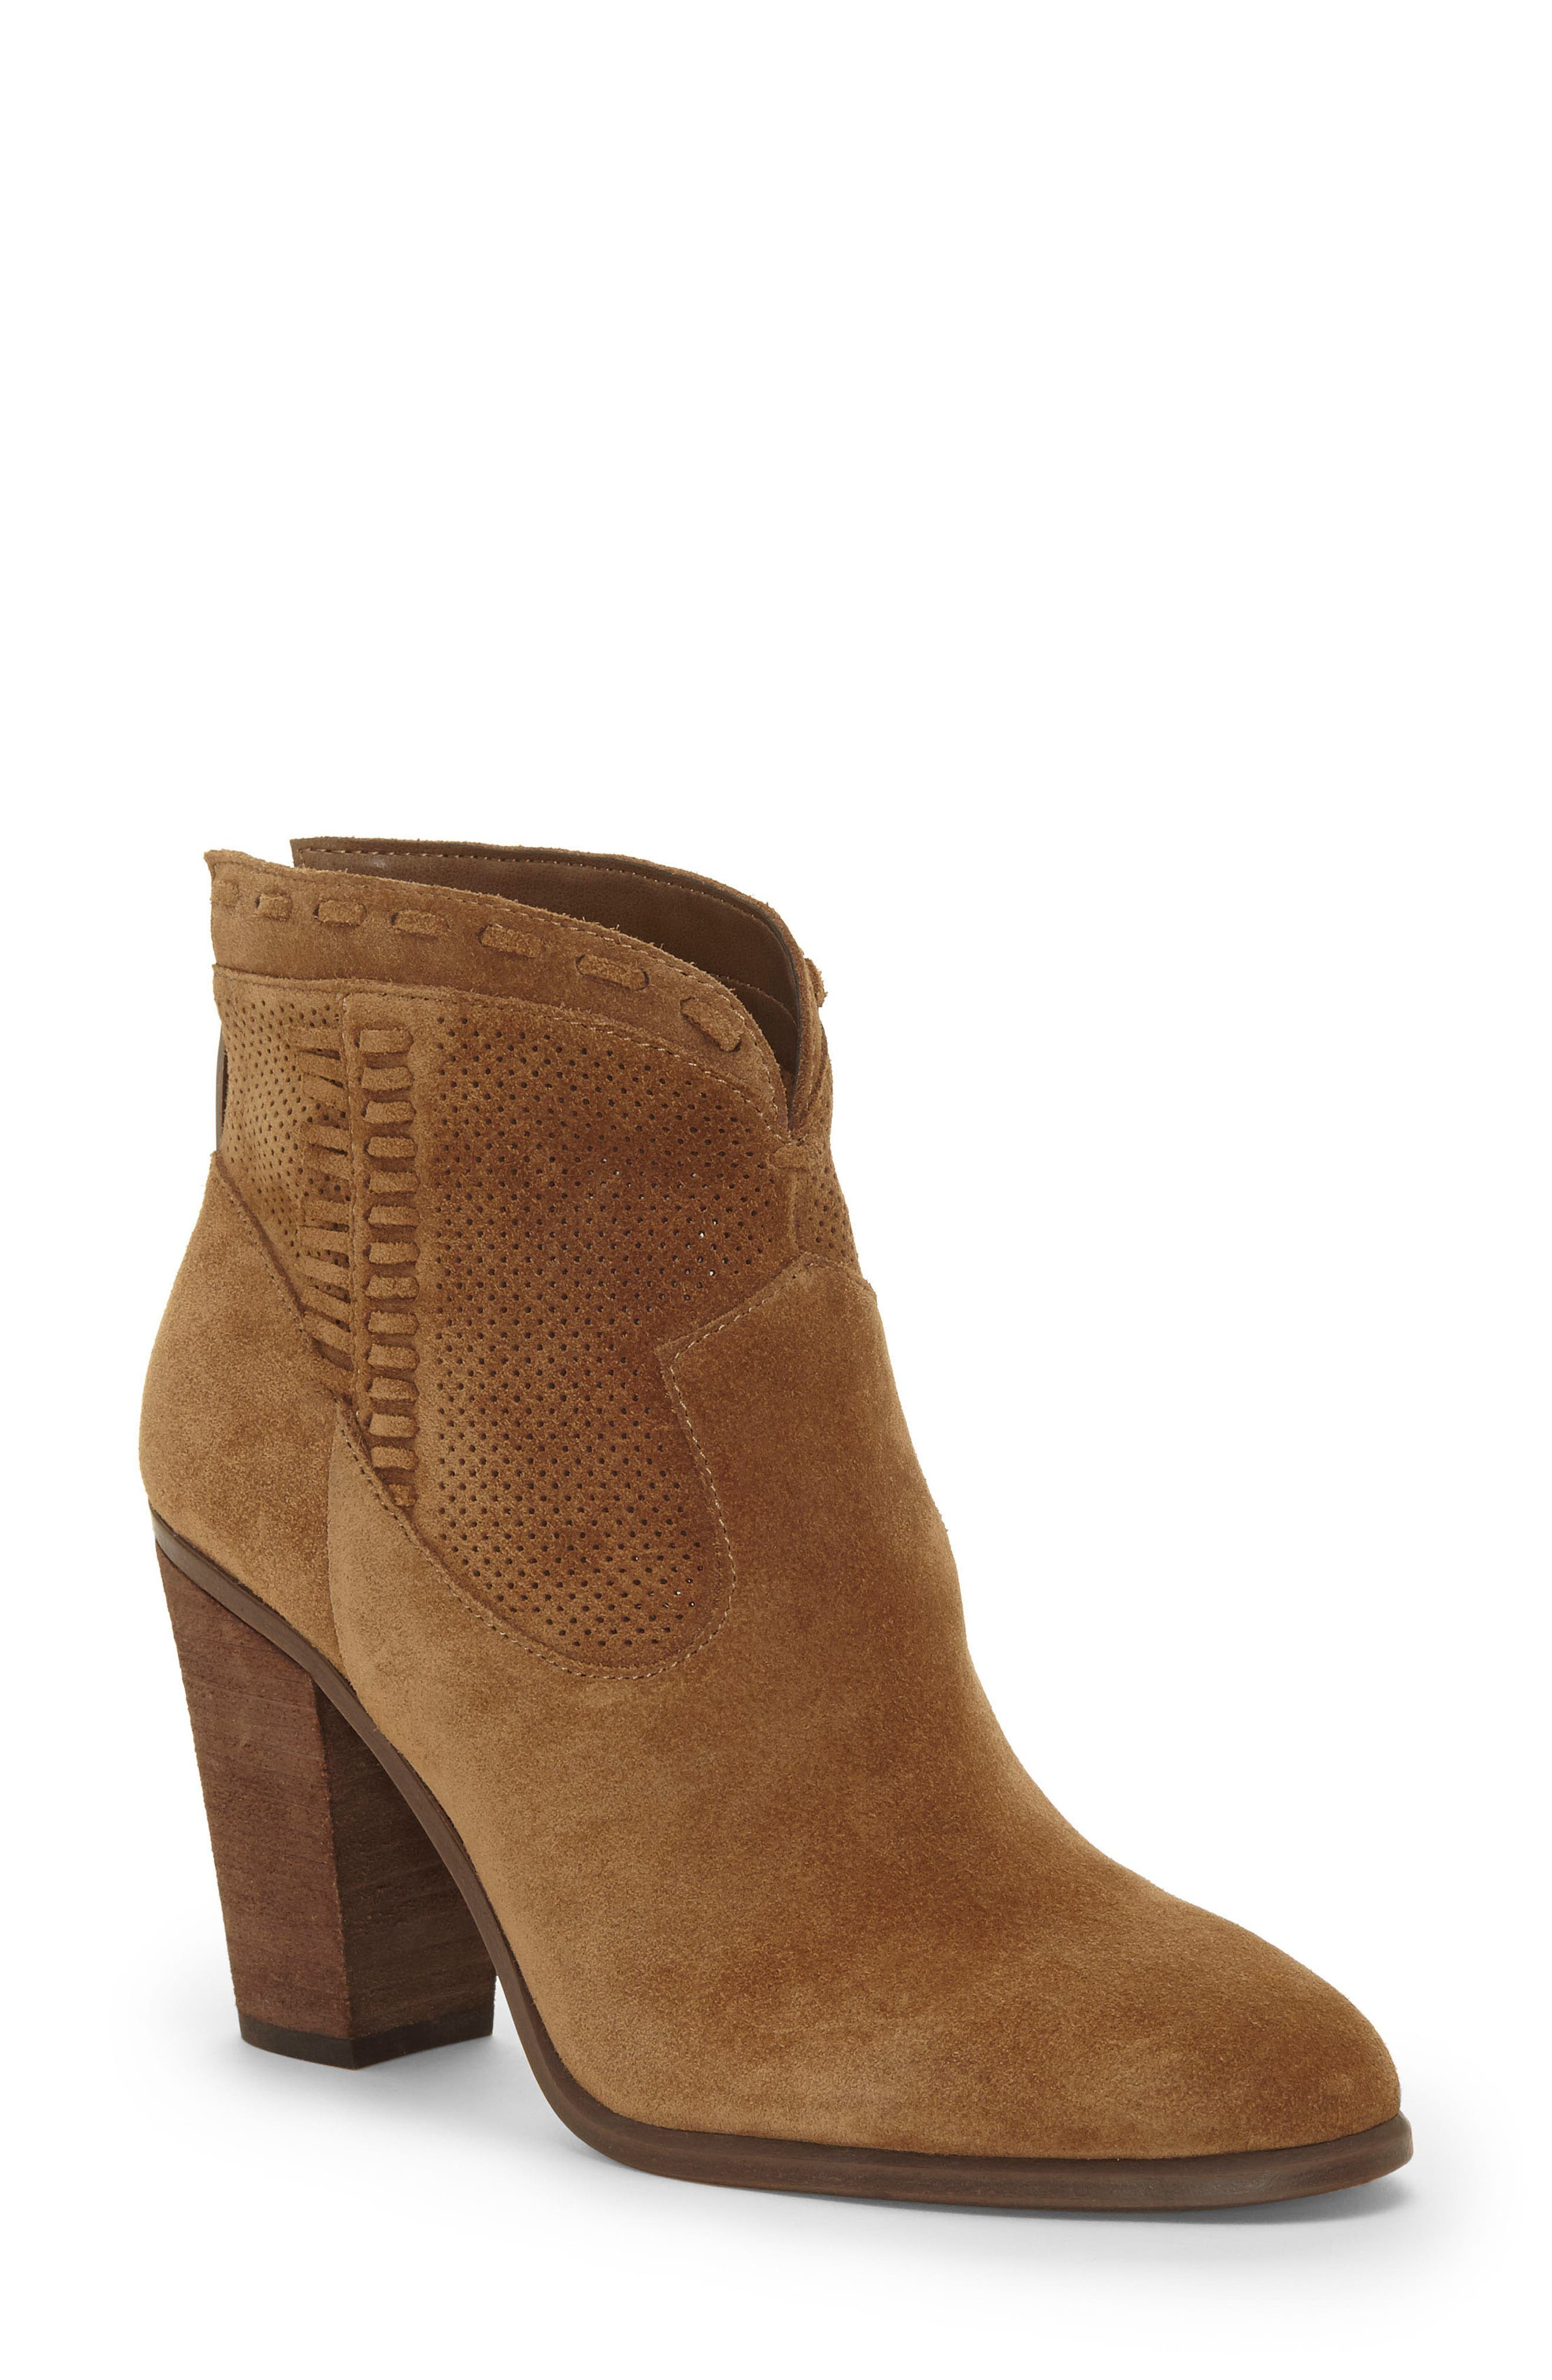 VINCE CAMUTO Fretzia Perforated Boot, Main, color, TREE HOUSE NUBUCK